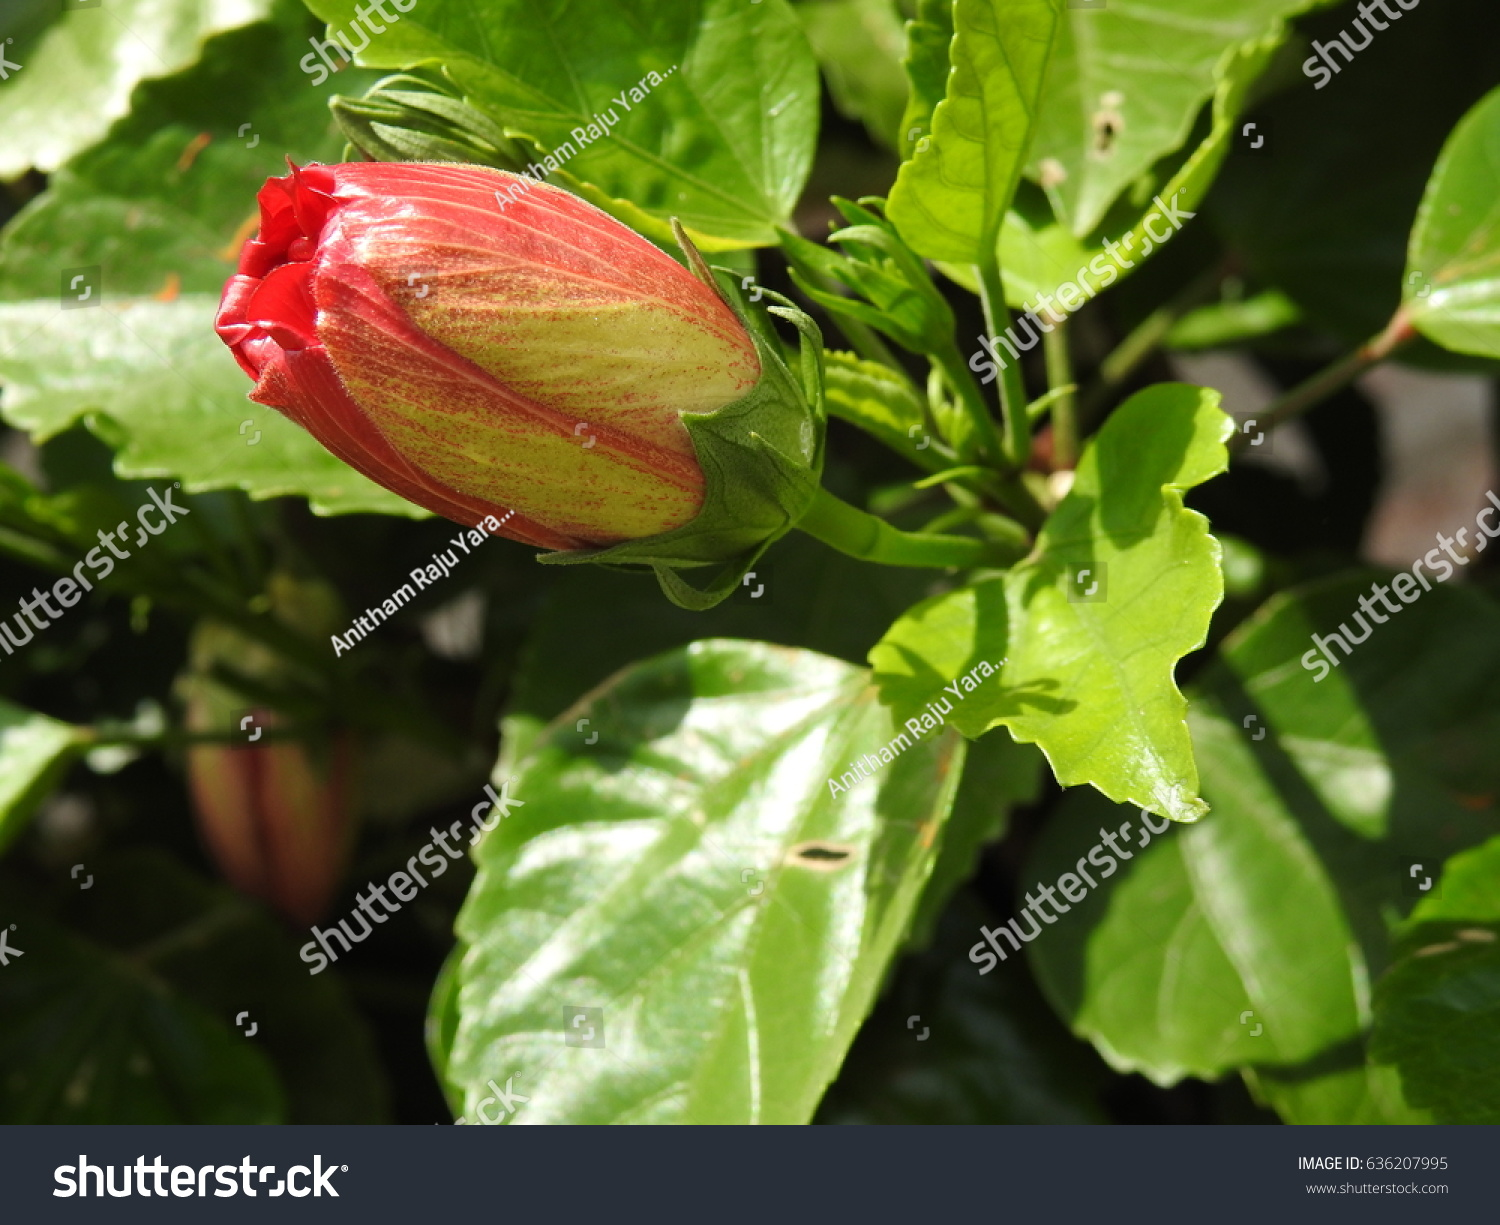 Hibiscus Flower Bud Early Stags Full Stock Photo Royalty Free